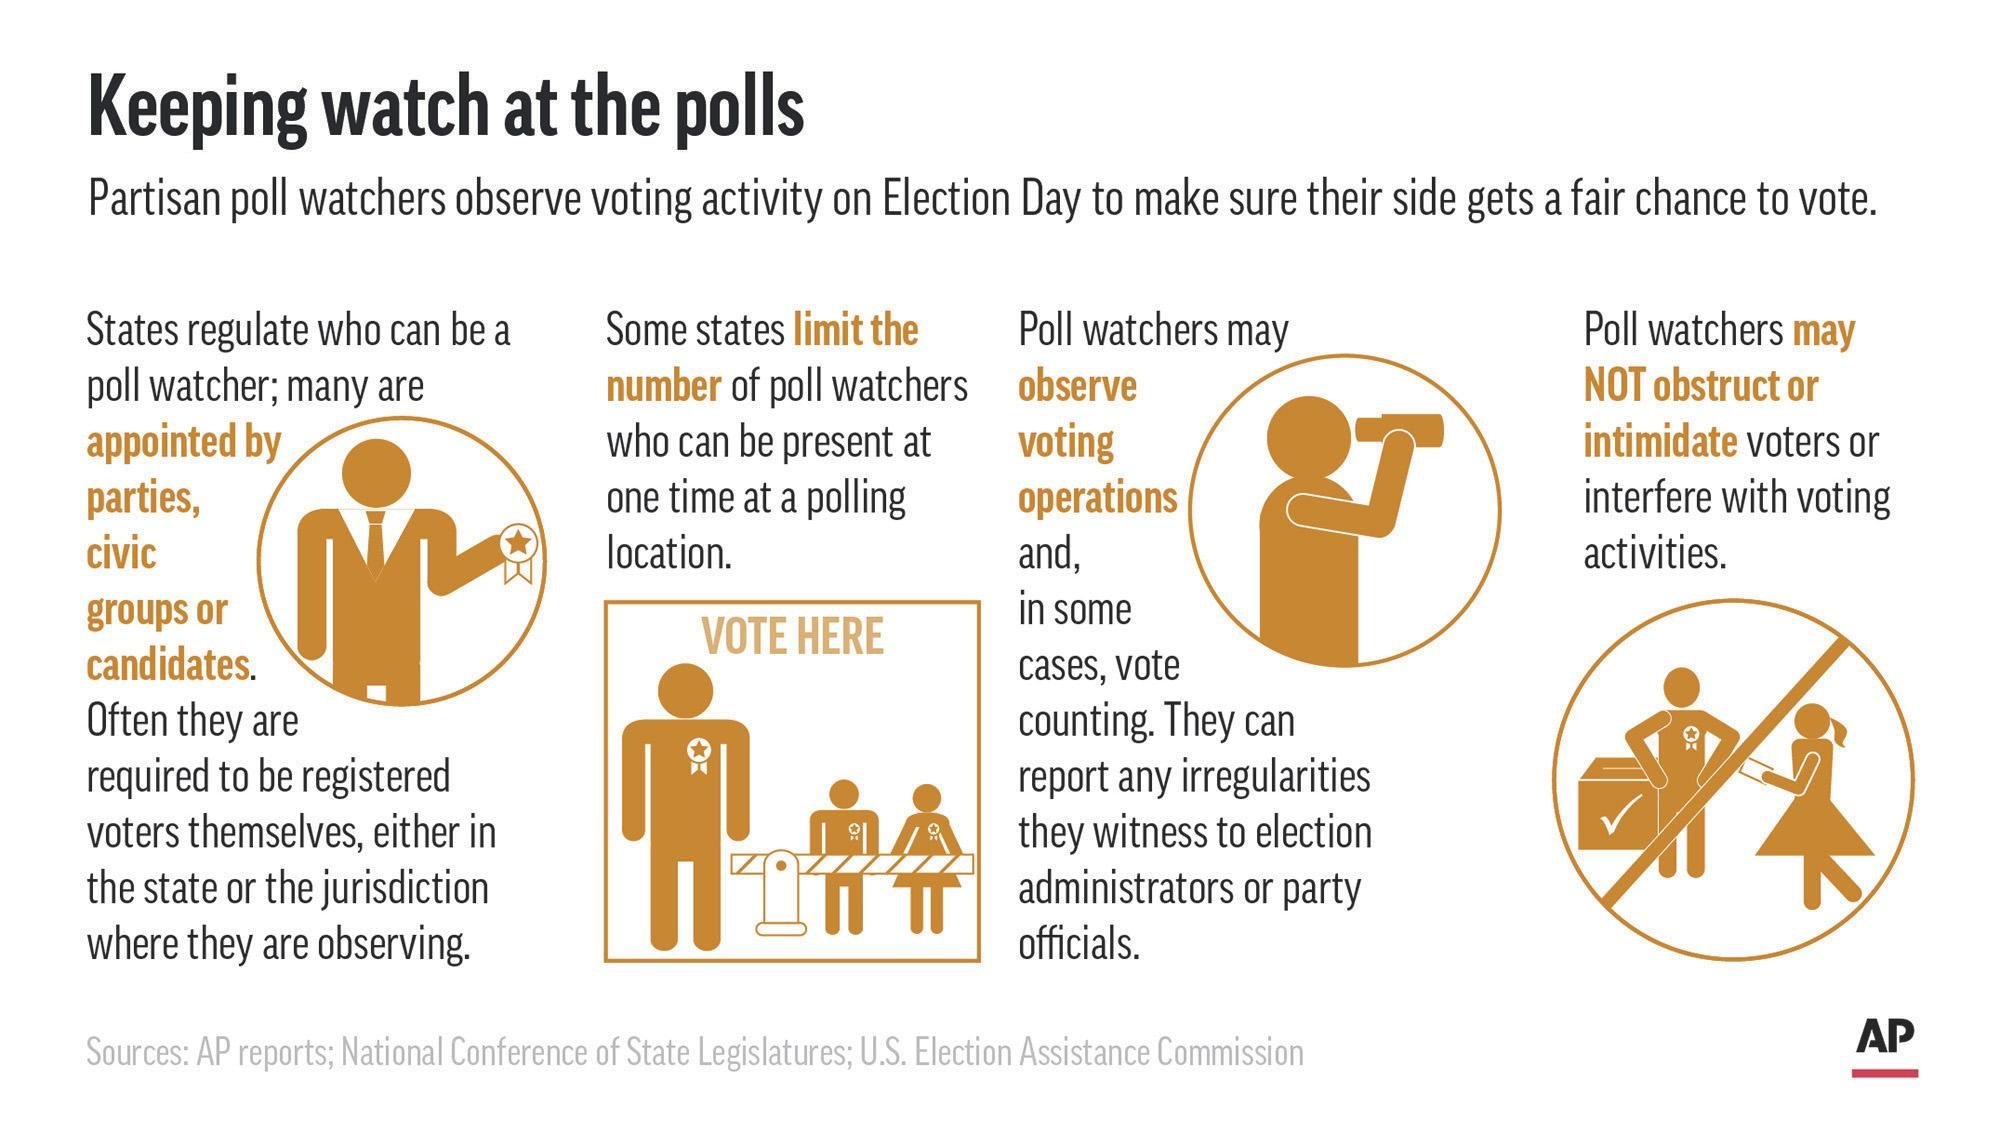 Graphic shows qualifications and duties of poll watchers in U.S. elections. (Click to enlarge.)